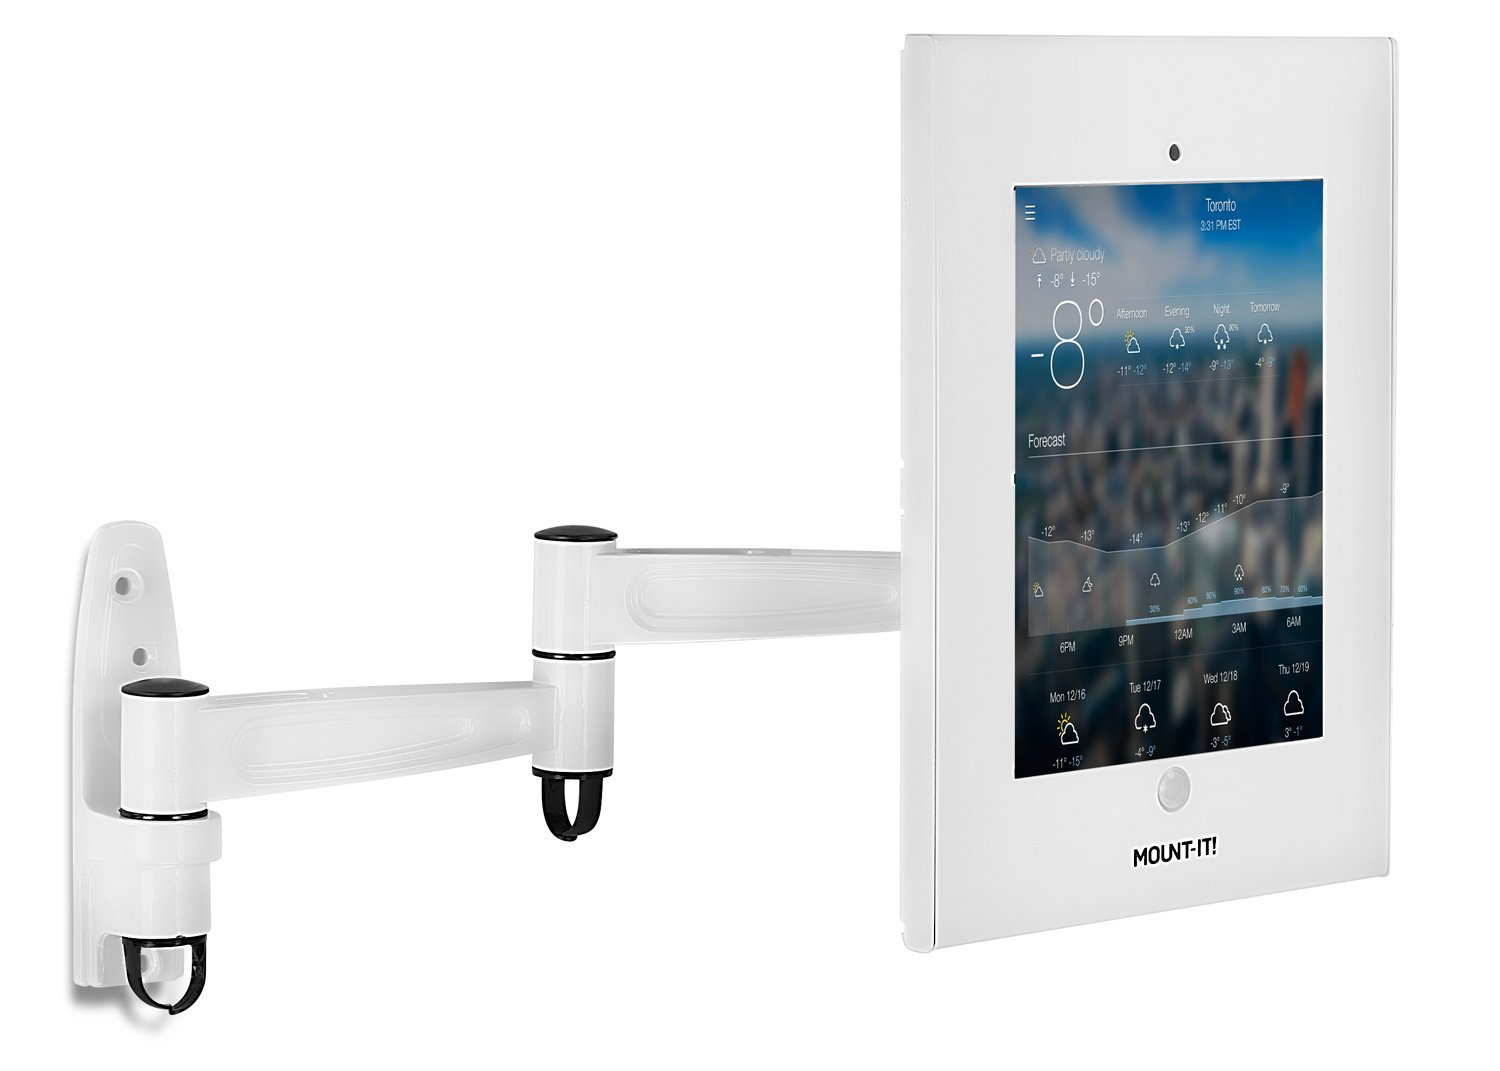 Mount-It! Tablet Wall Mount and Enclosure with Anti-Theft Function Apple iPad Holder, Locking for Public Desk Displays Case Holder iPad 2, 3, 4, and Air Or 9.7 inches Screen Tablet Sizes